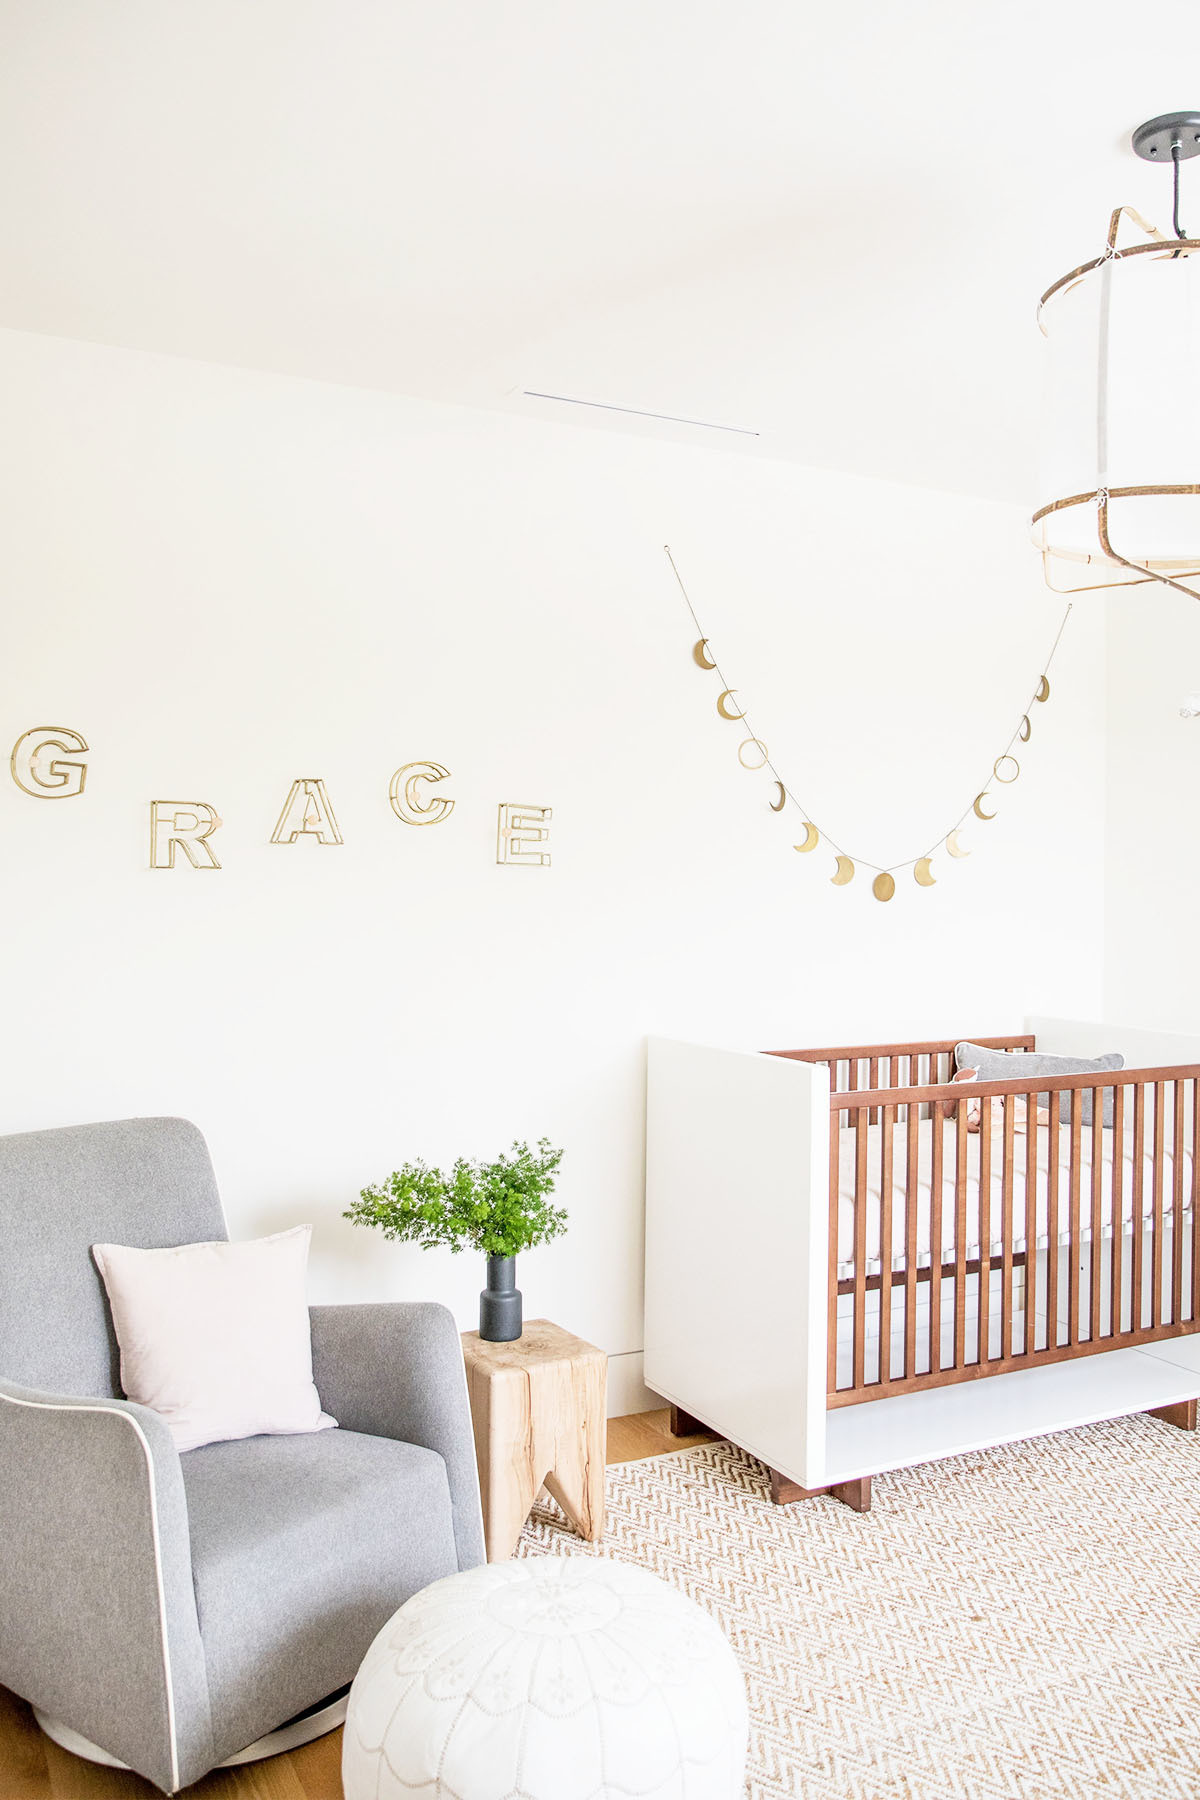 Daughter Grace's nursery is cozy yet minimal, adhering to a gender neutral color palette. Room & Board Crib | Monte Armchair | Serena and Lily Pouf | Matteo Pillow | Kalon Stool | Restoration Hardware Garland | Anthropologie Signage | West Elm Rug | Ay Illuminate Chandelier.